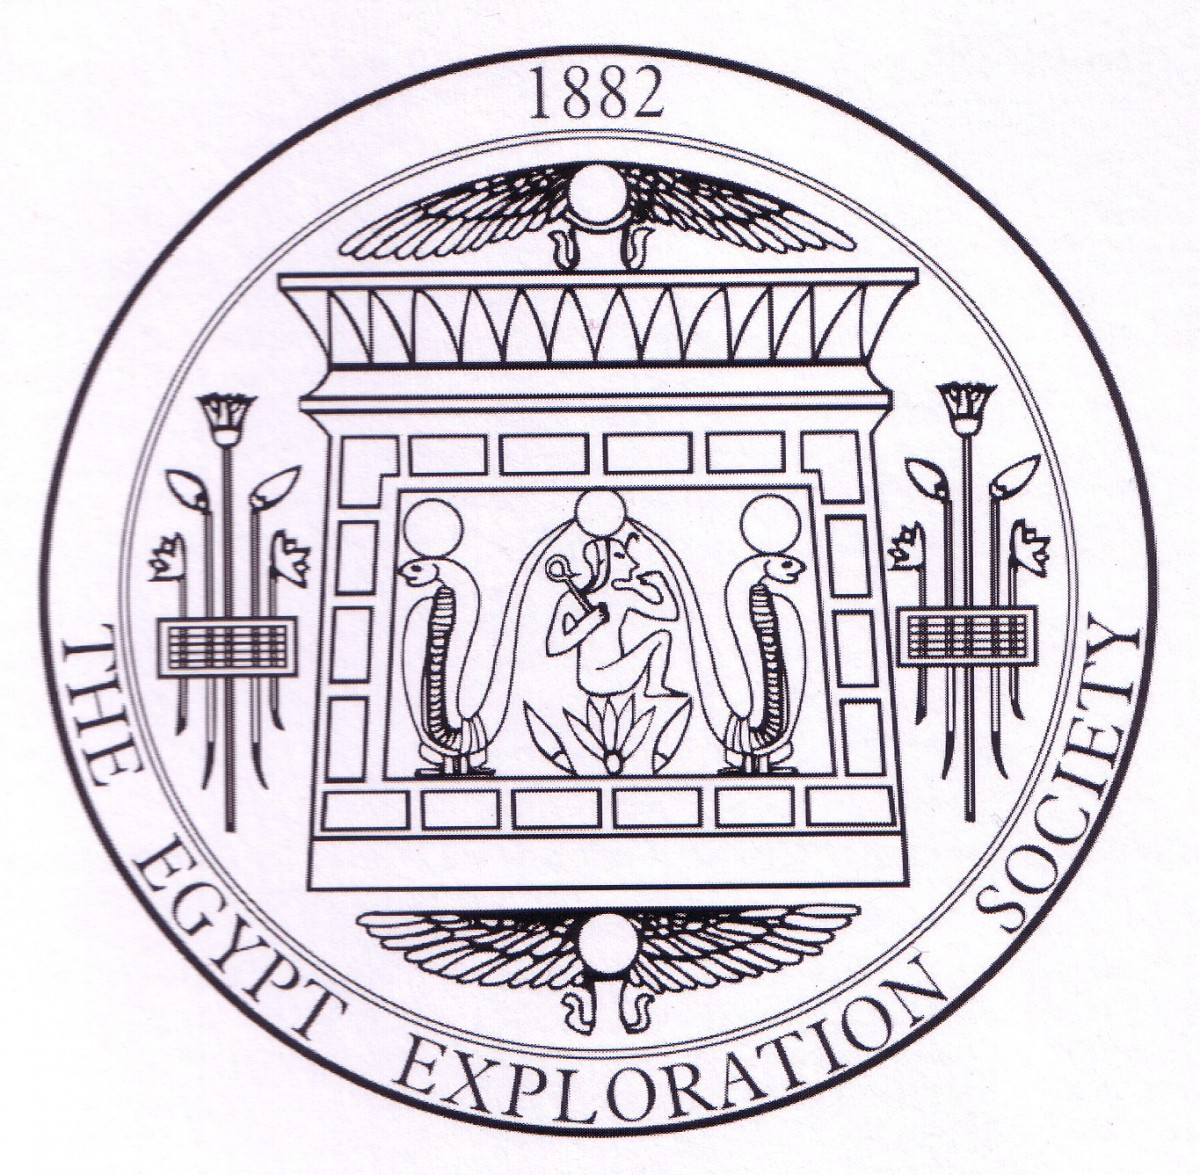 The EES logo.